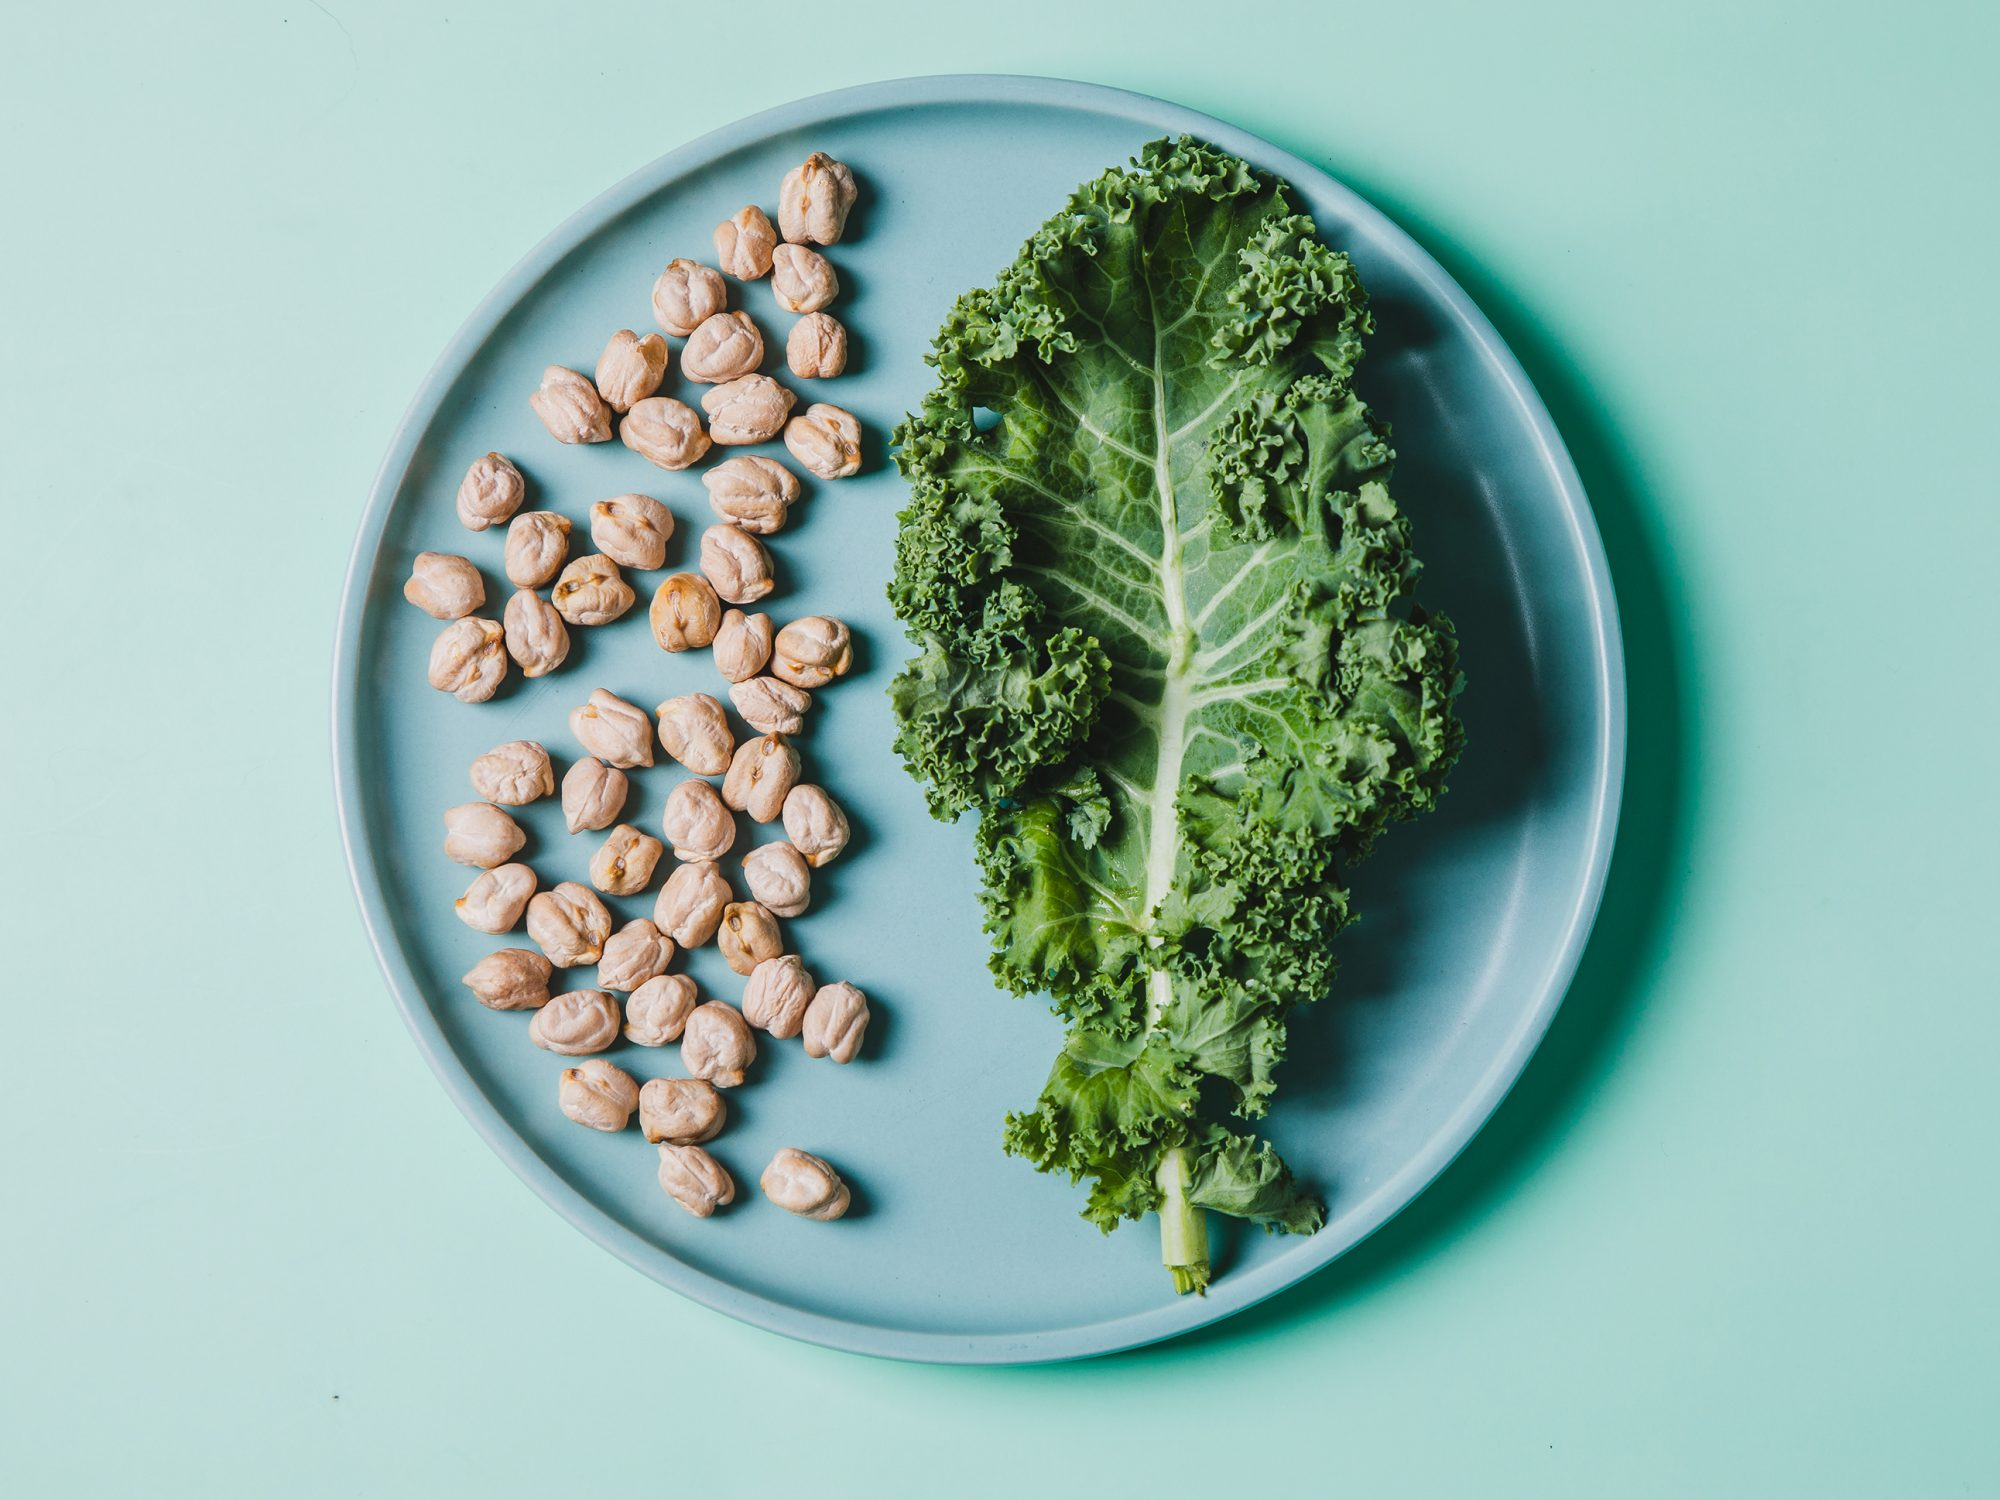 overhead view of super food kale and chickpeas in a plate against green background: healthy sources of fiber